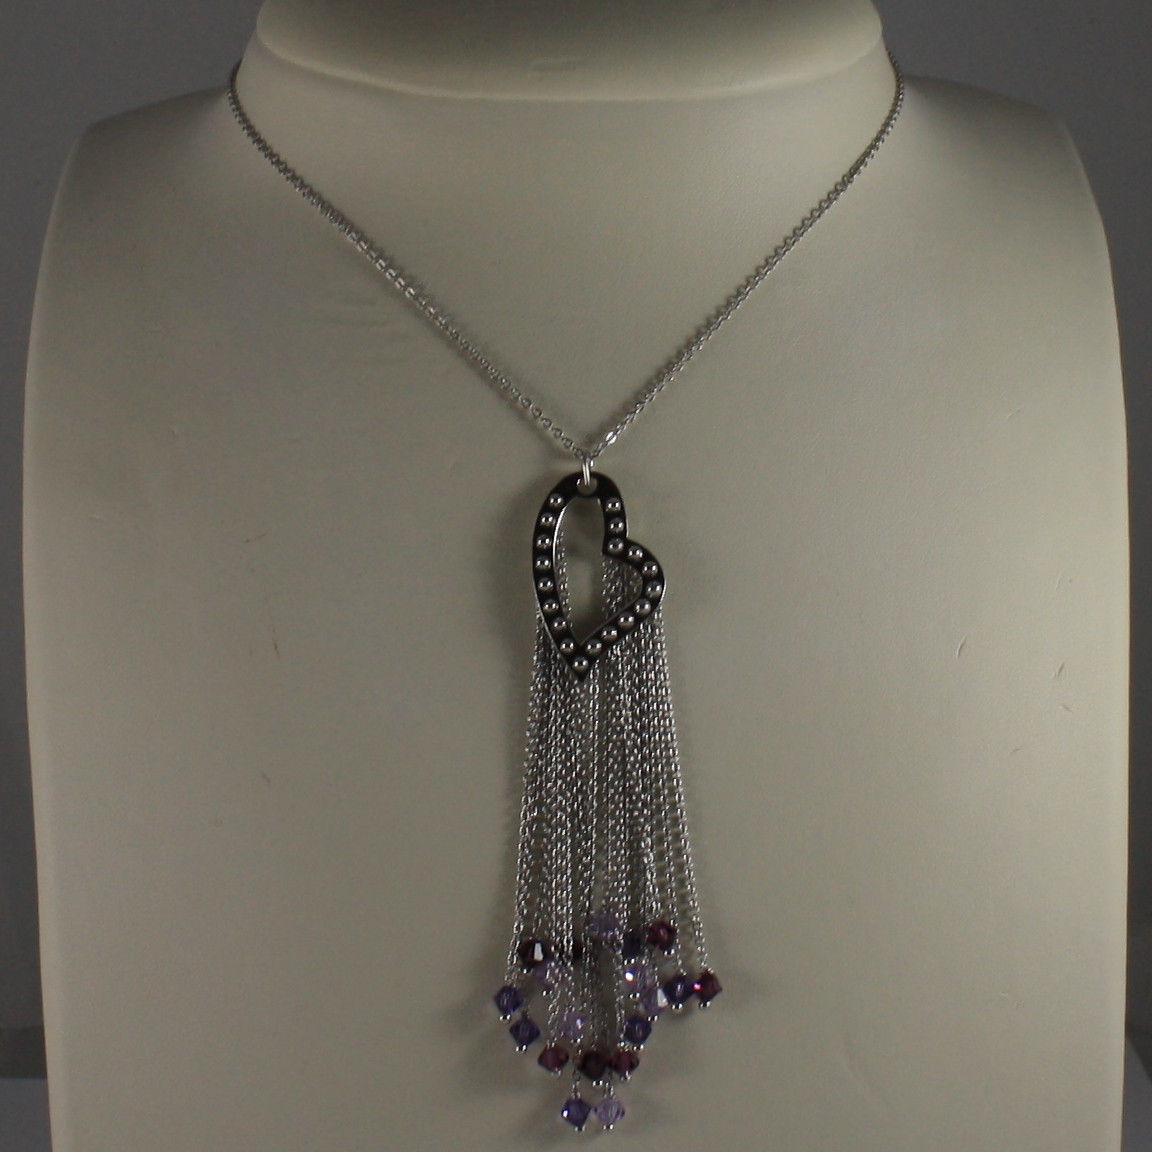 .925 SILVER RHODIUM NECKLACE WITH HEART PENDANT WITH PURPLE CRYSTALS